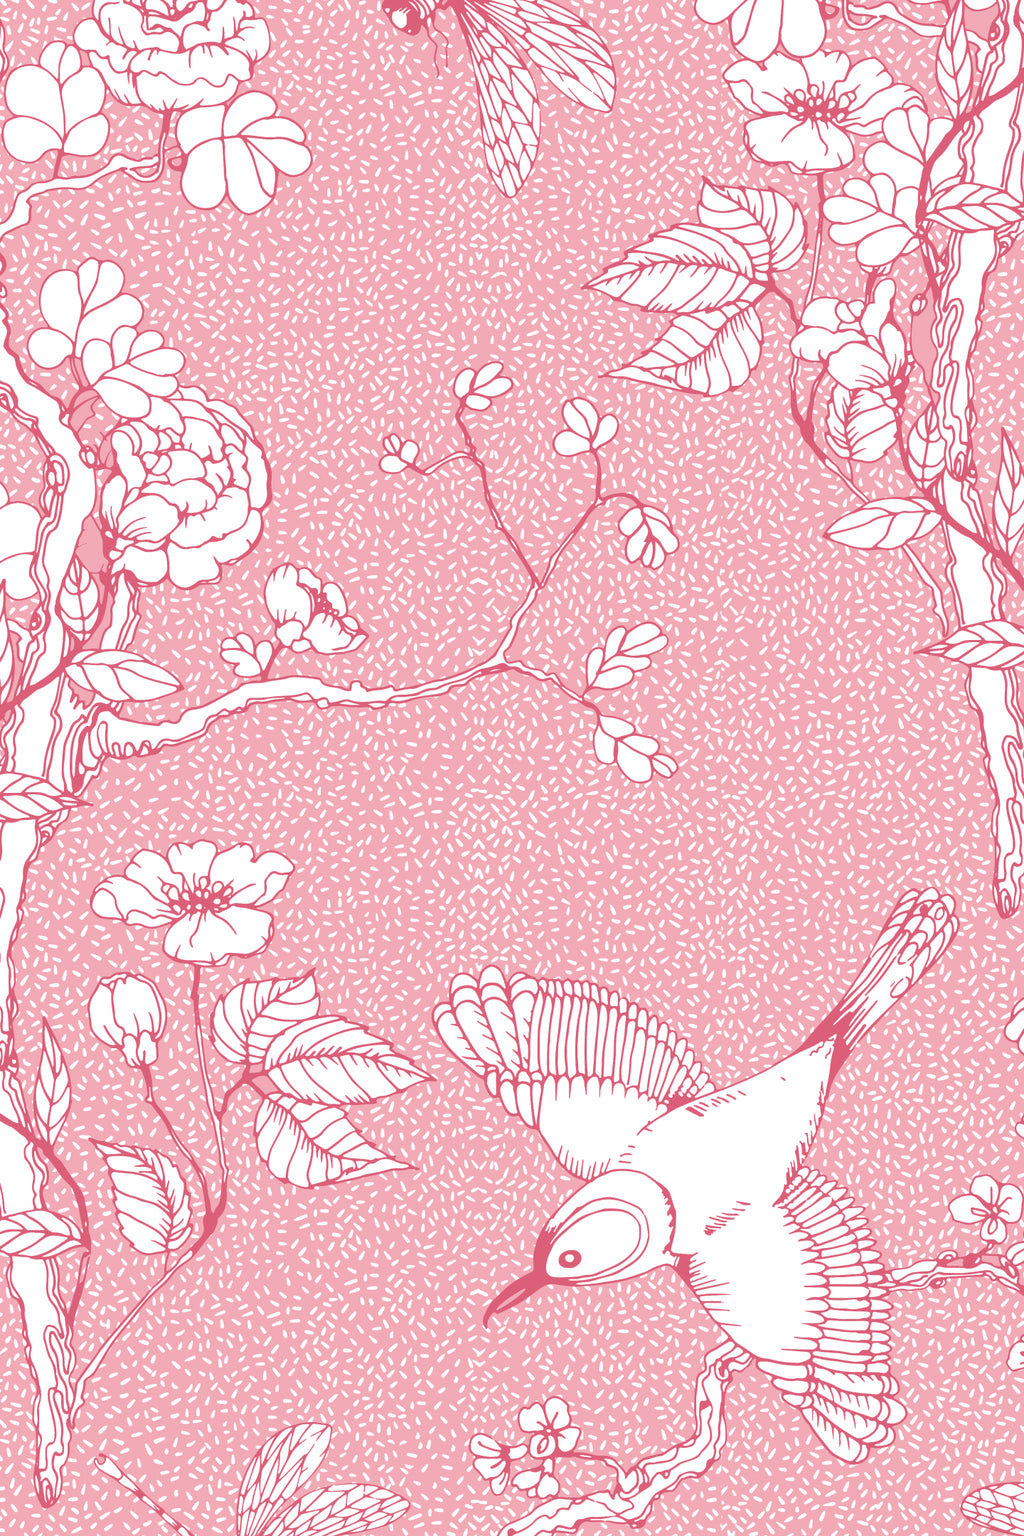 Chinoiserie Blossom Fabric, Color Pink